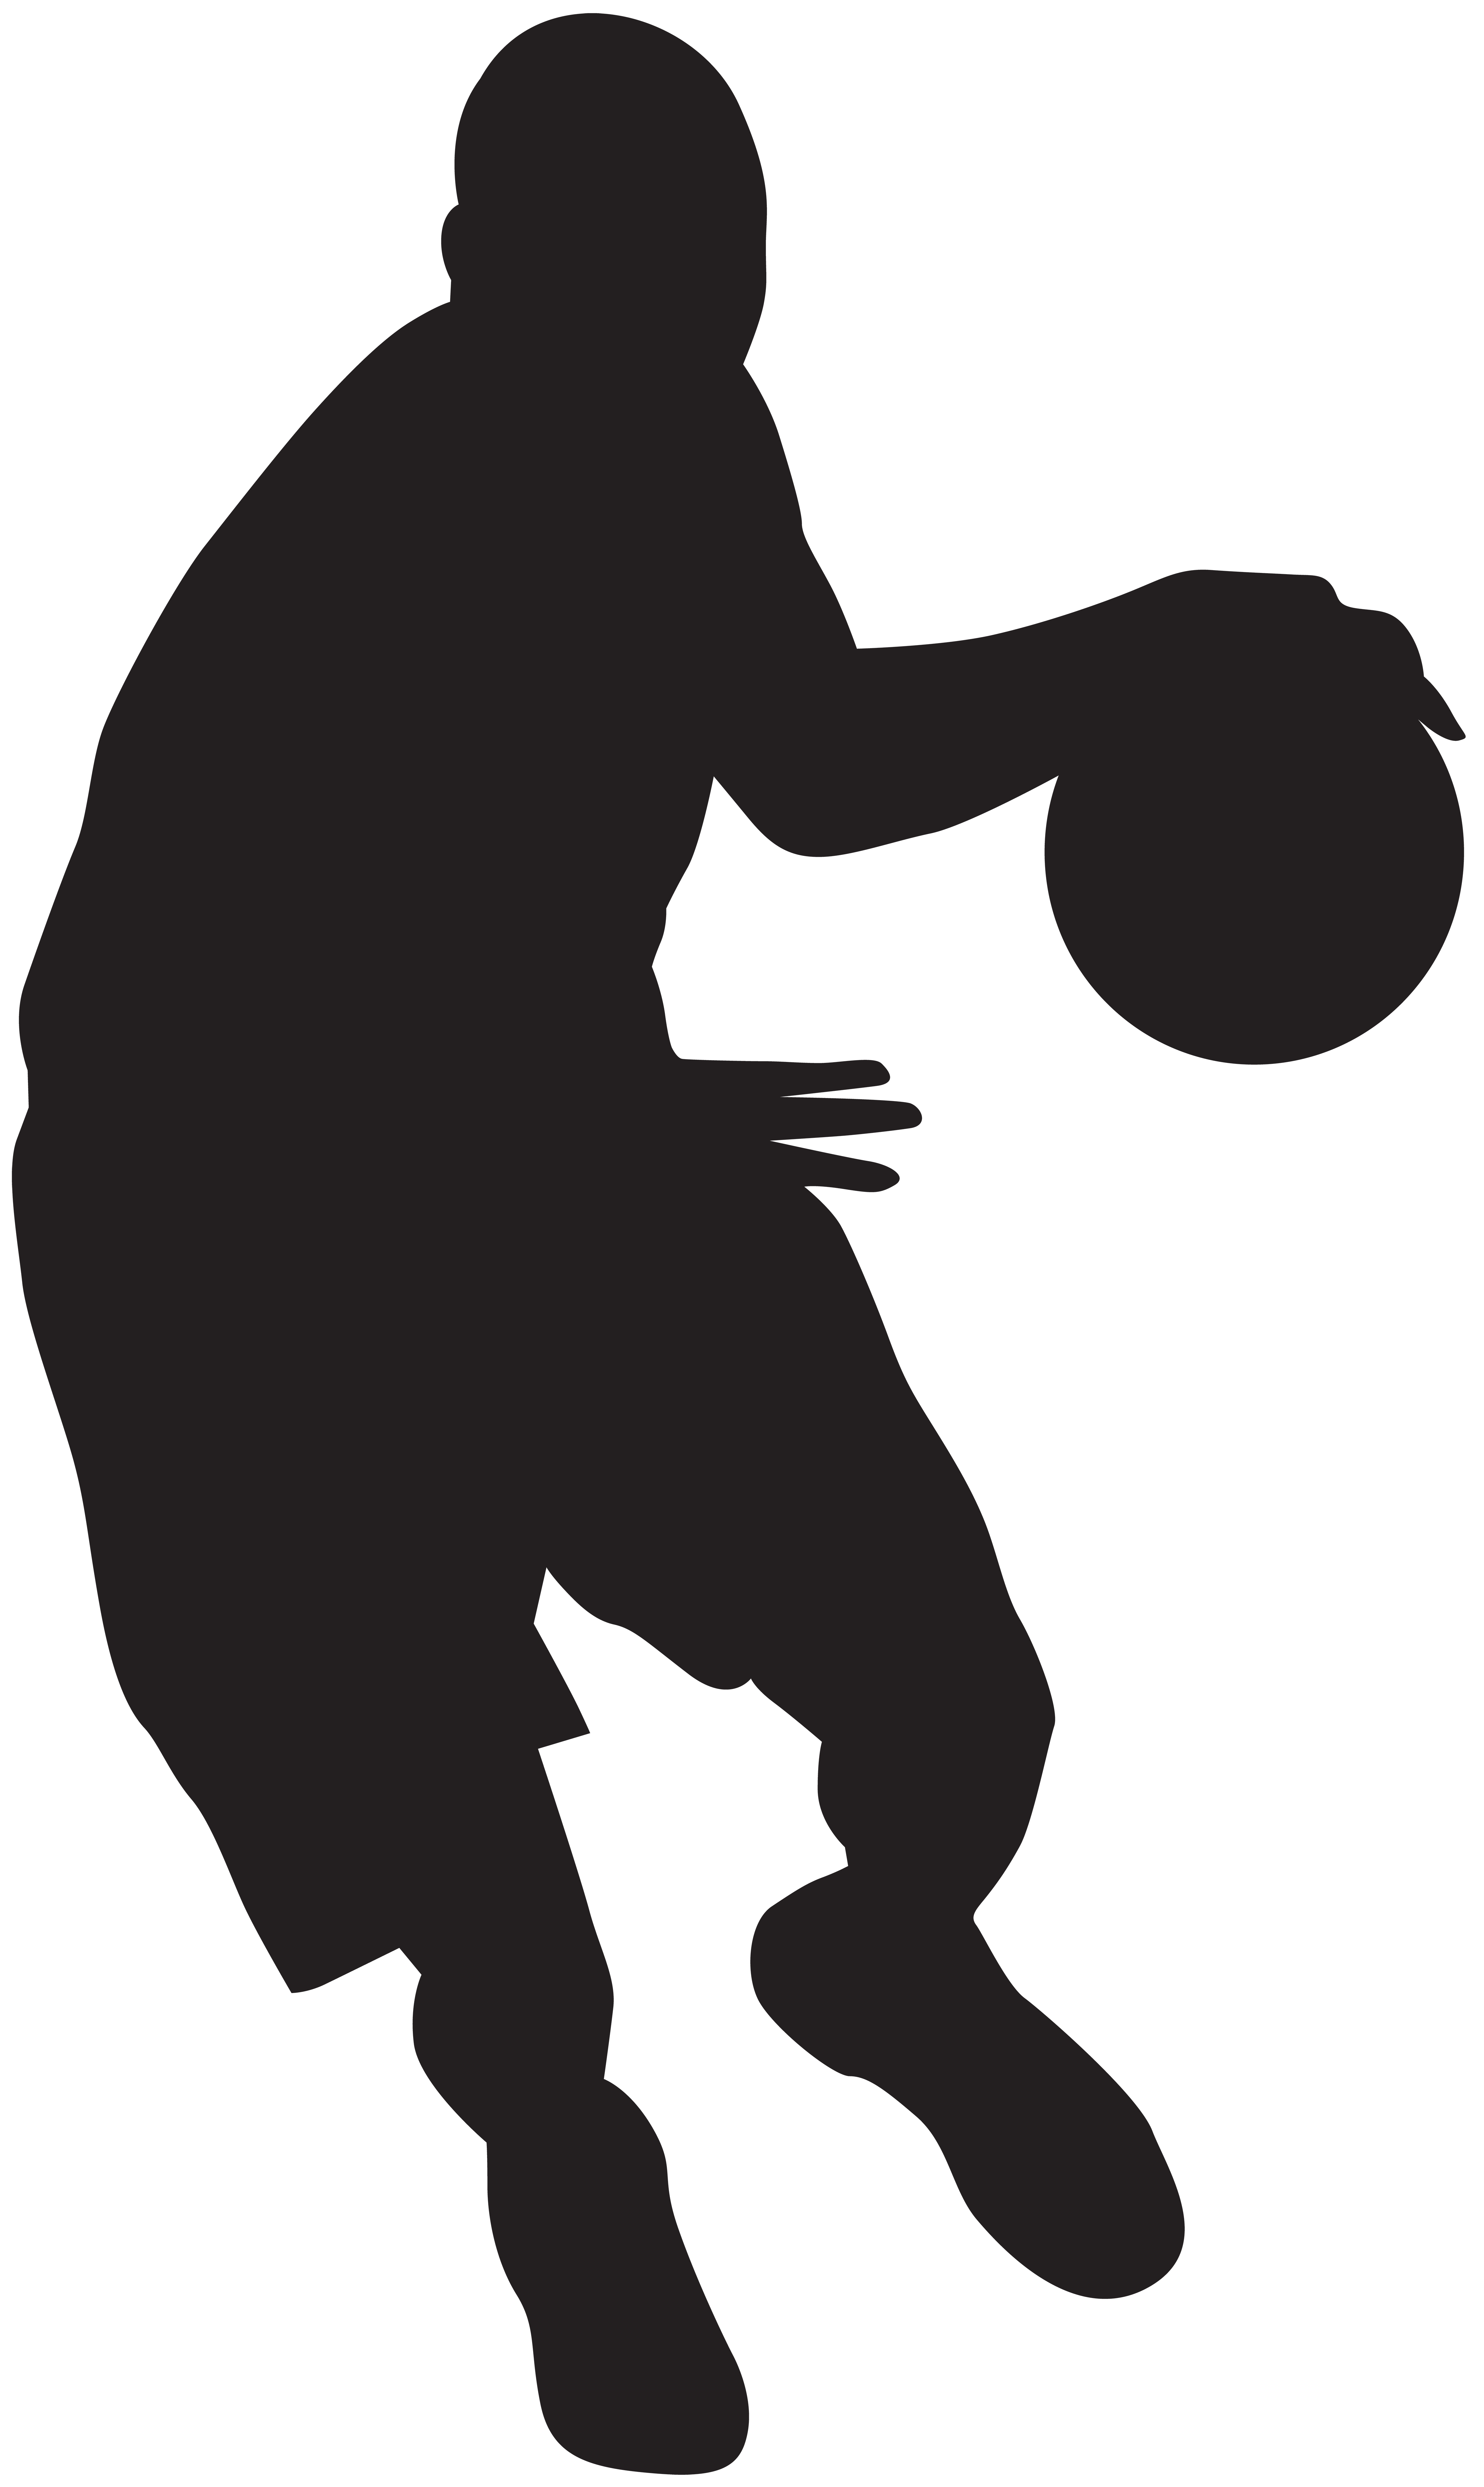 Basketball player silhouette png. Clip art image gallery